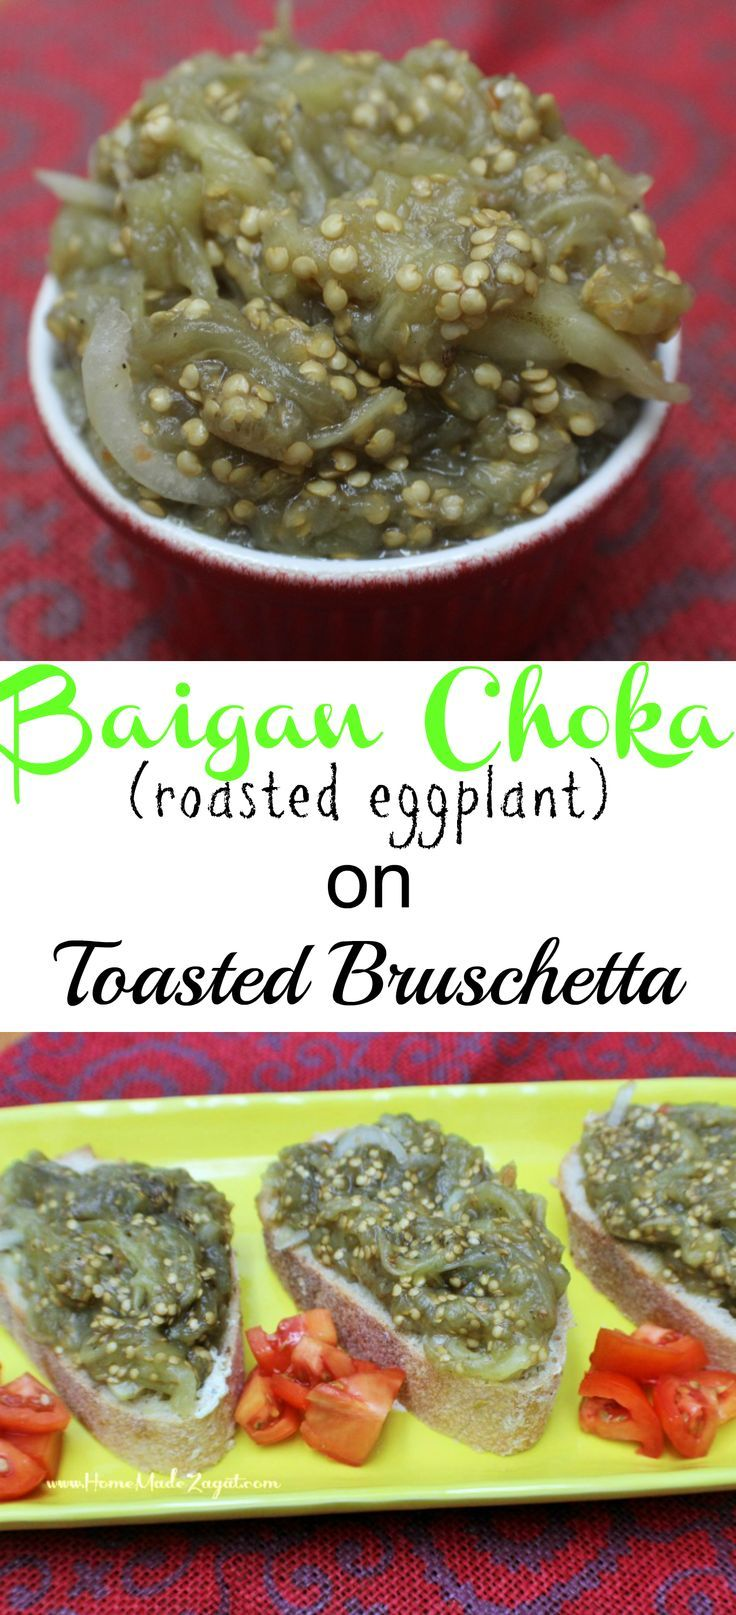 Baigan choka roasted eggplant on toasted bruschetta eggplants a caribbean vegetarian side dish that is robustly flavored with garlic while the eggplant is roasted forumfinder Images